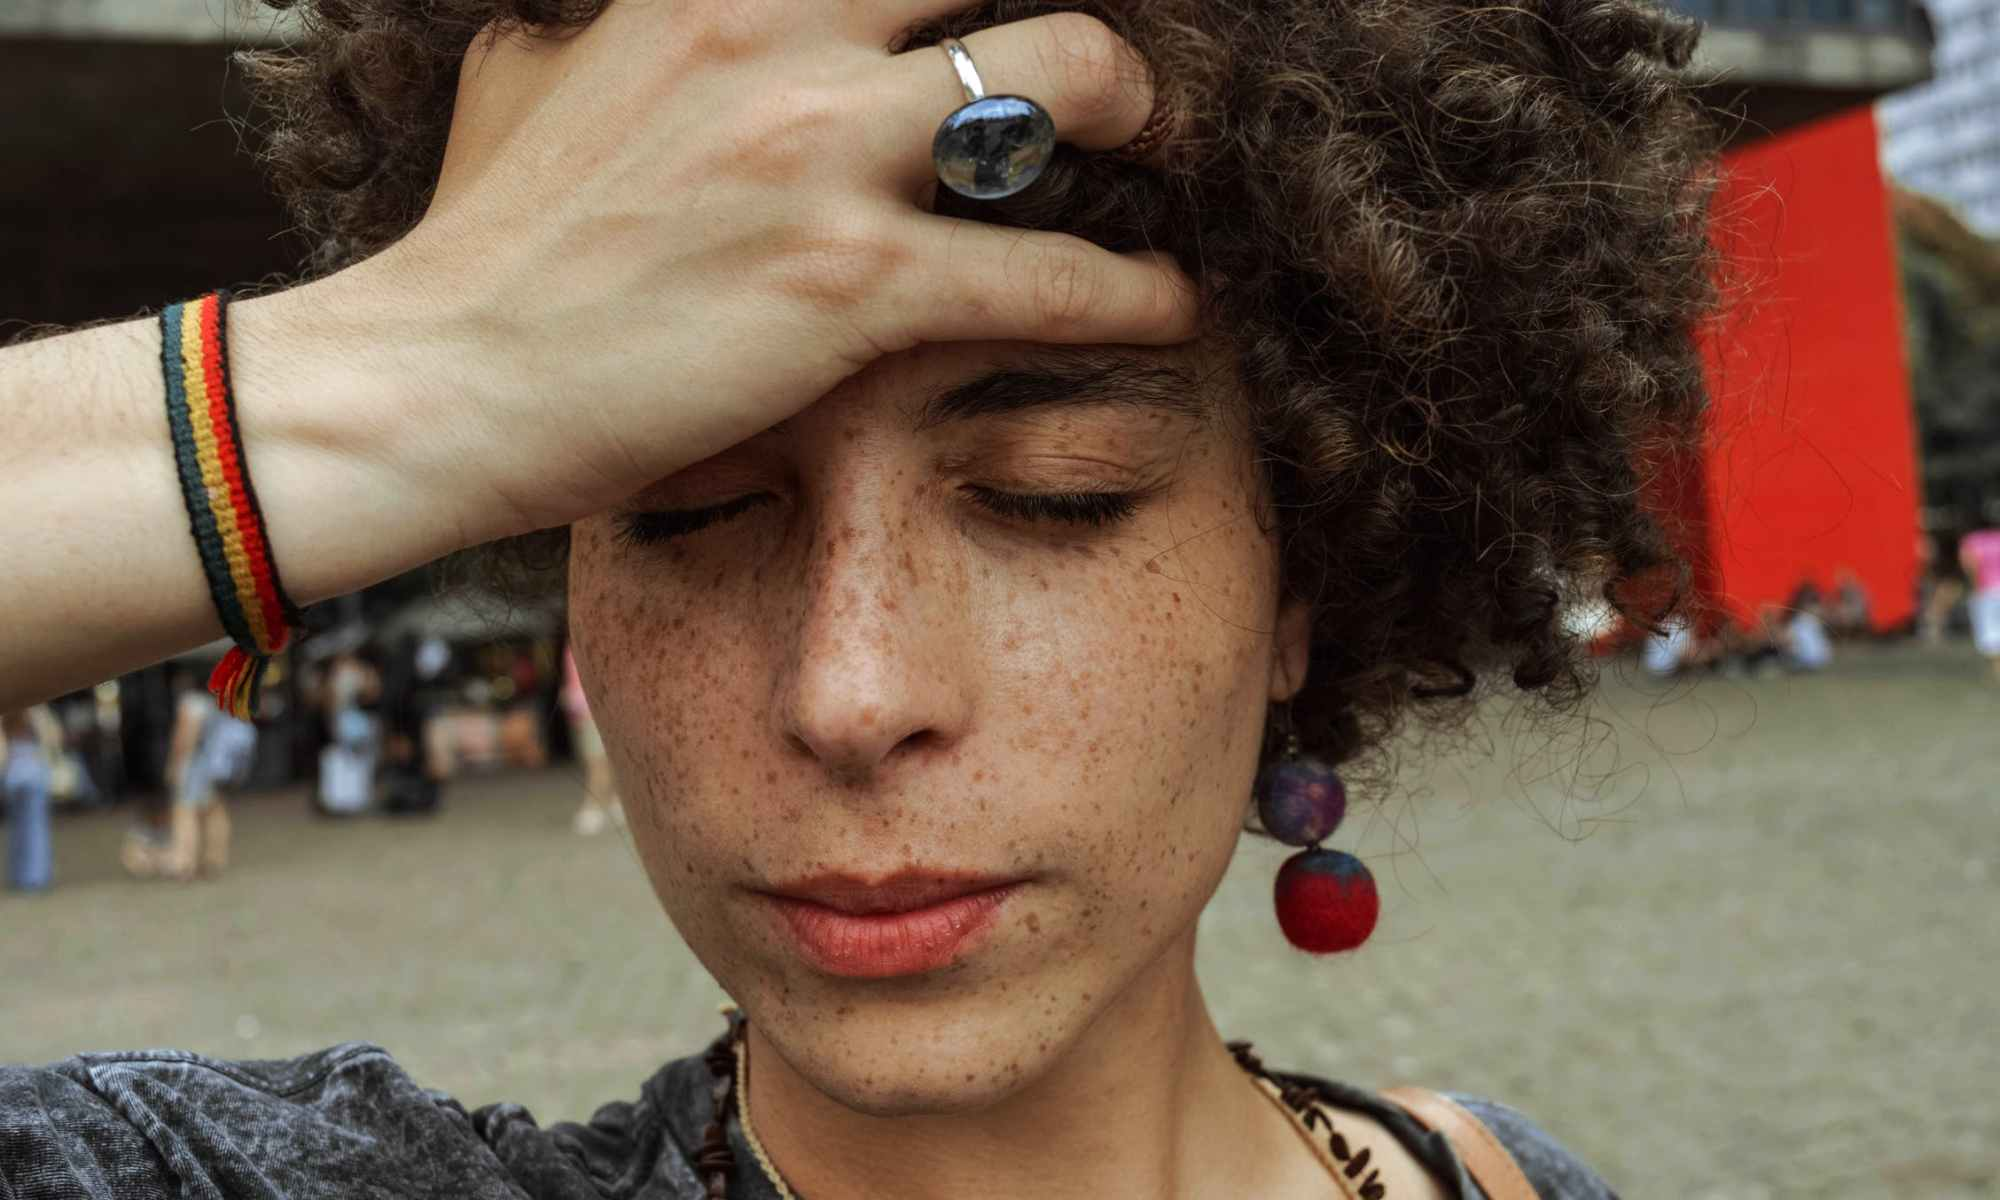 White woman with brown curly hair holding hand on forehead with eyes closed